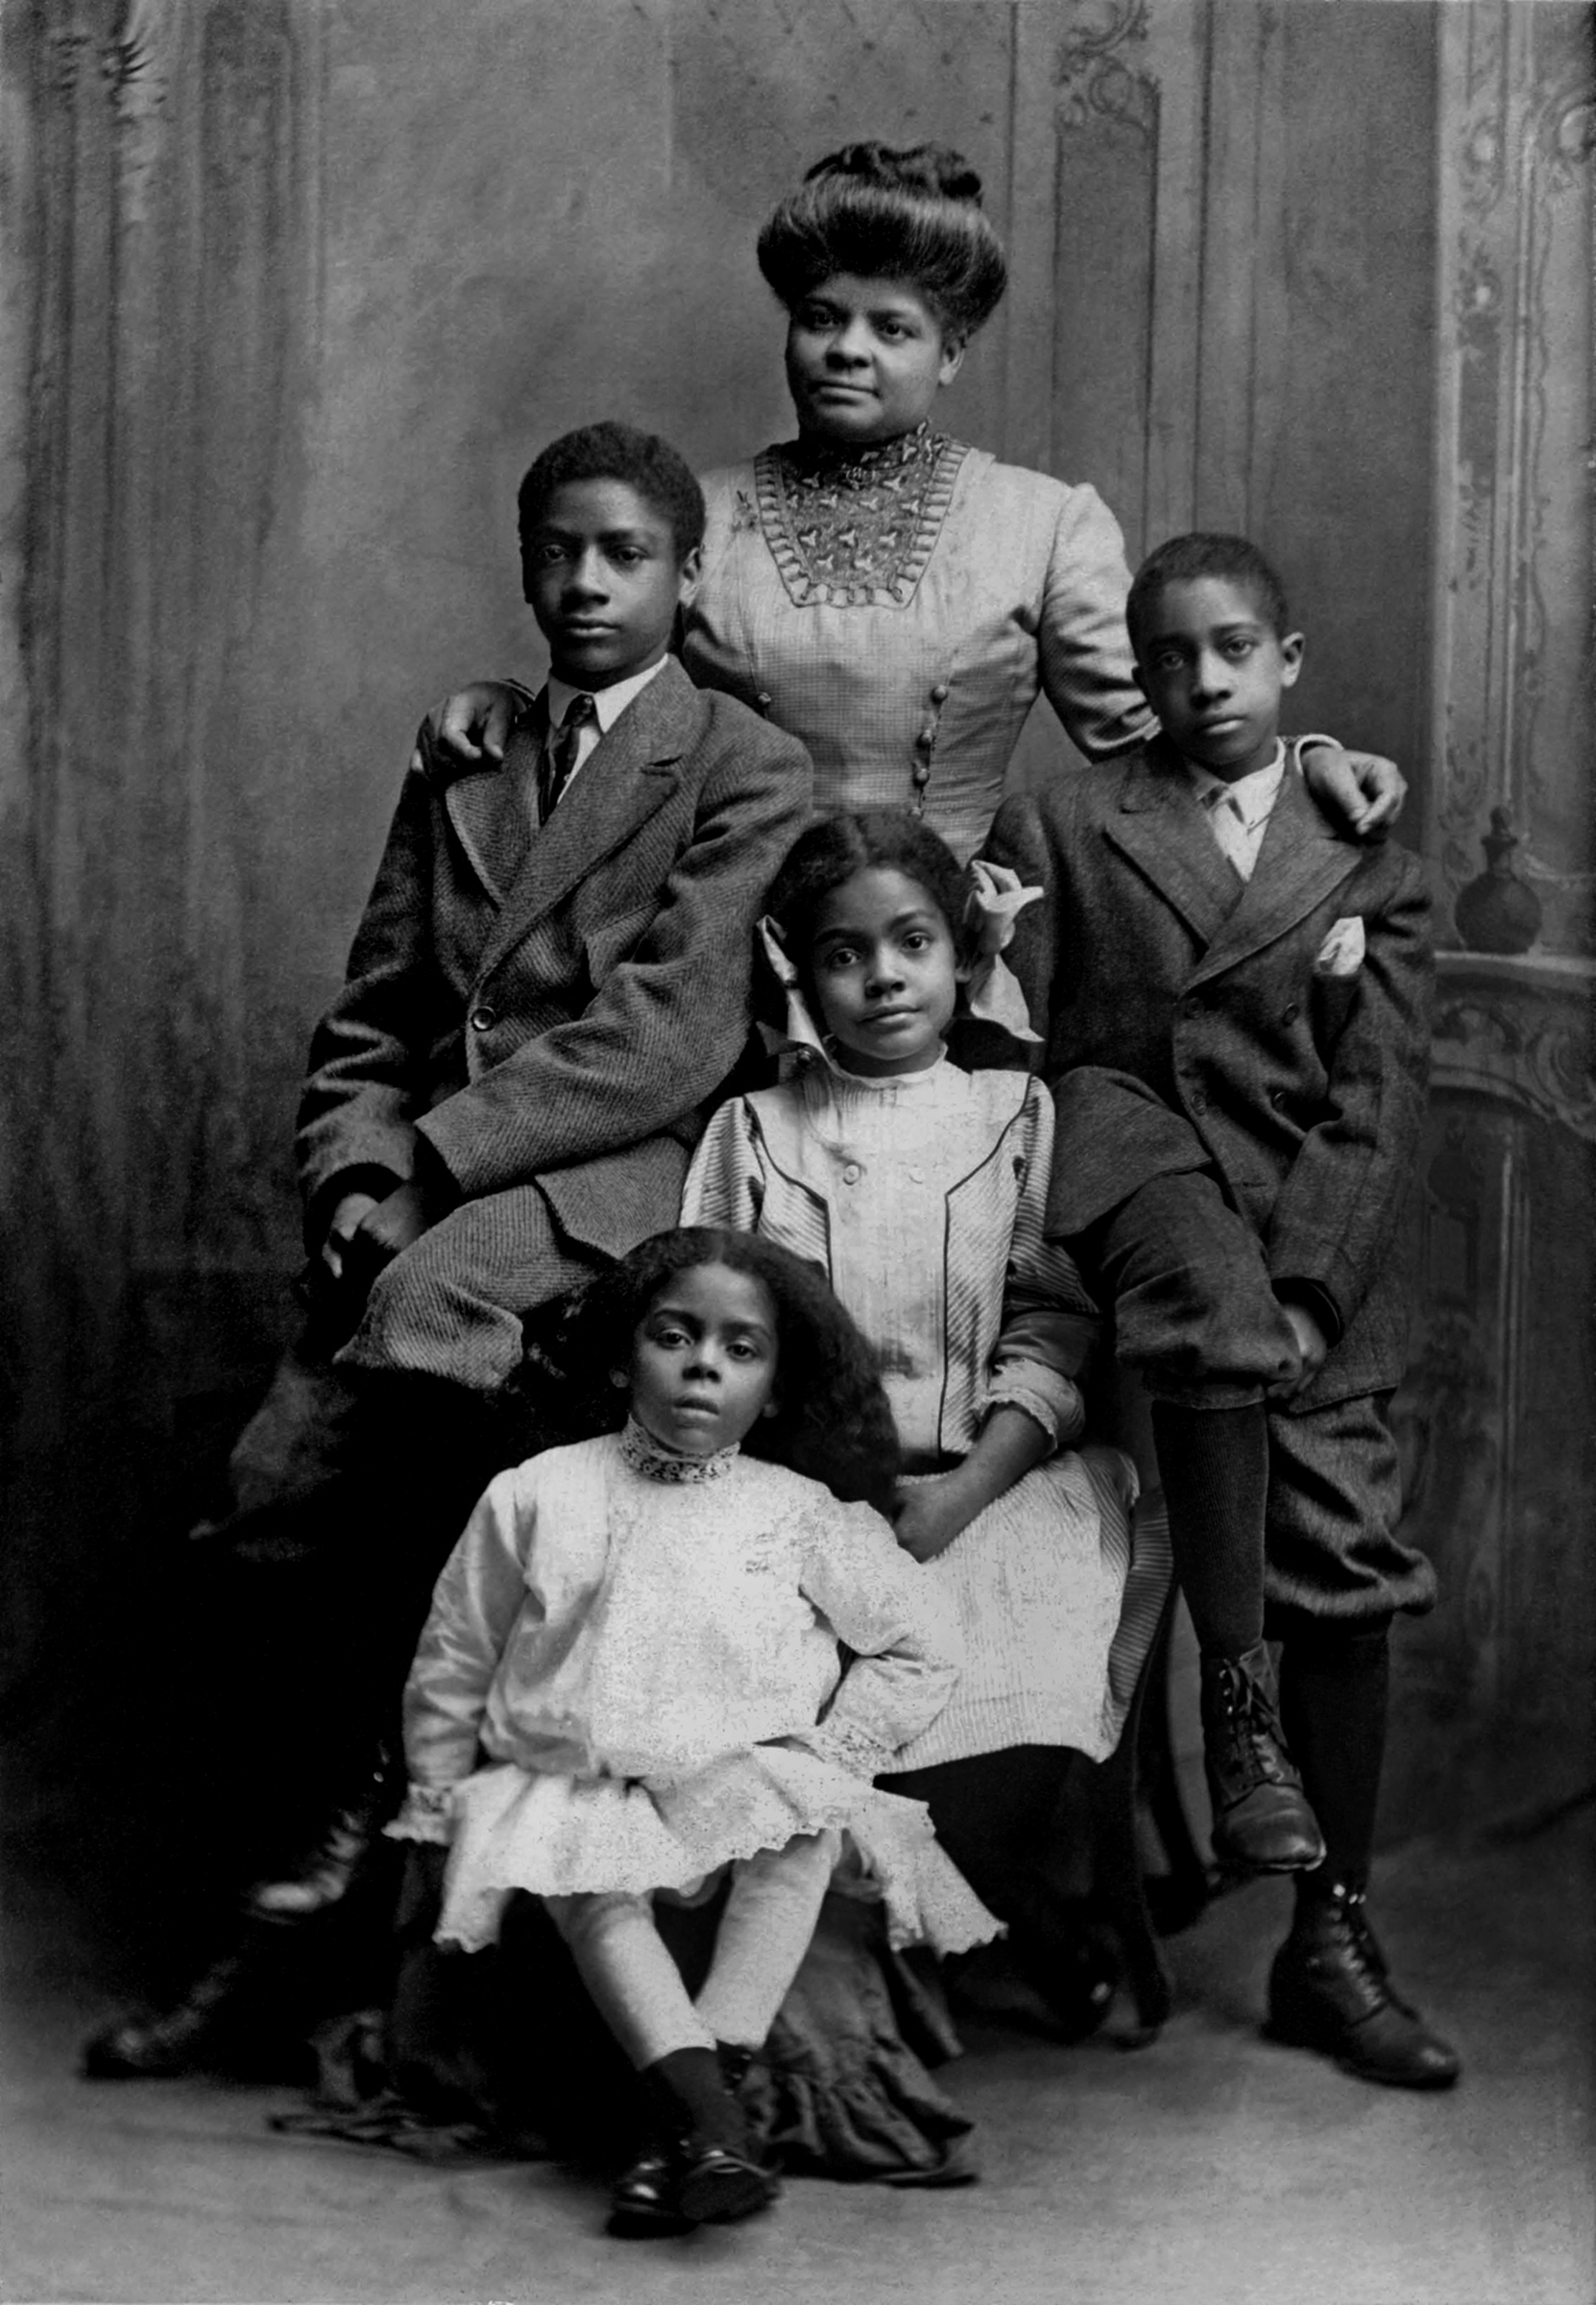 Ida B. Wells in Chicago in 1909 with her children: Charles, Herman, Ida and Alfreda